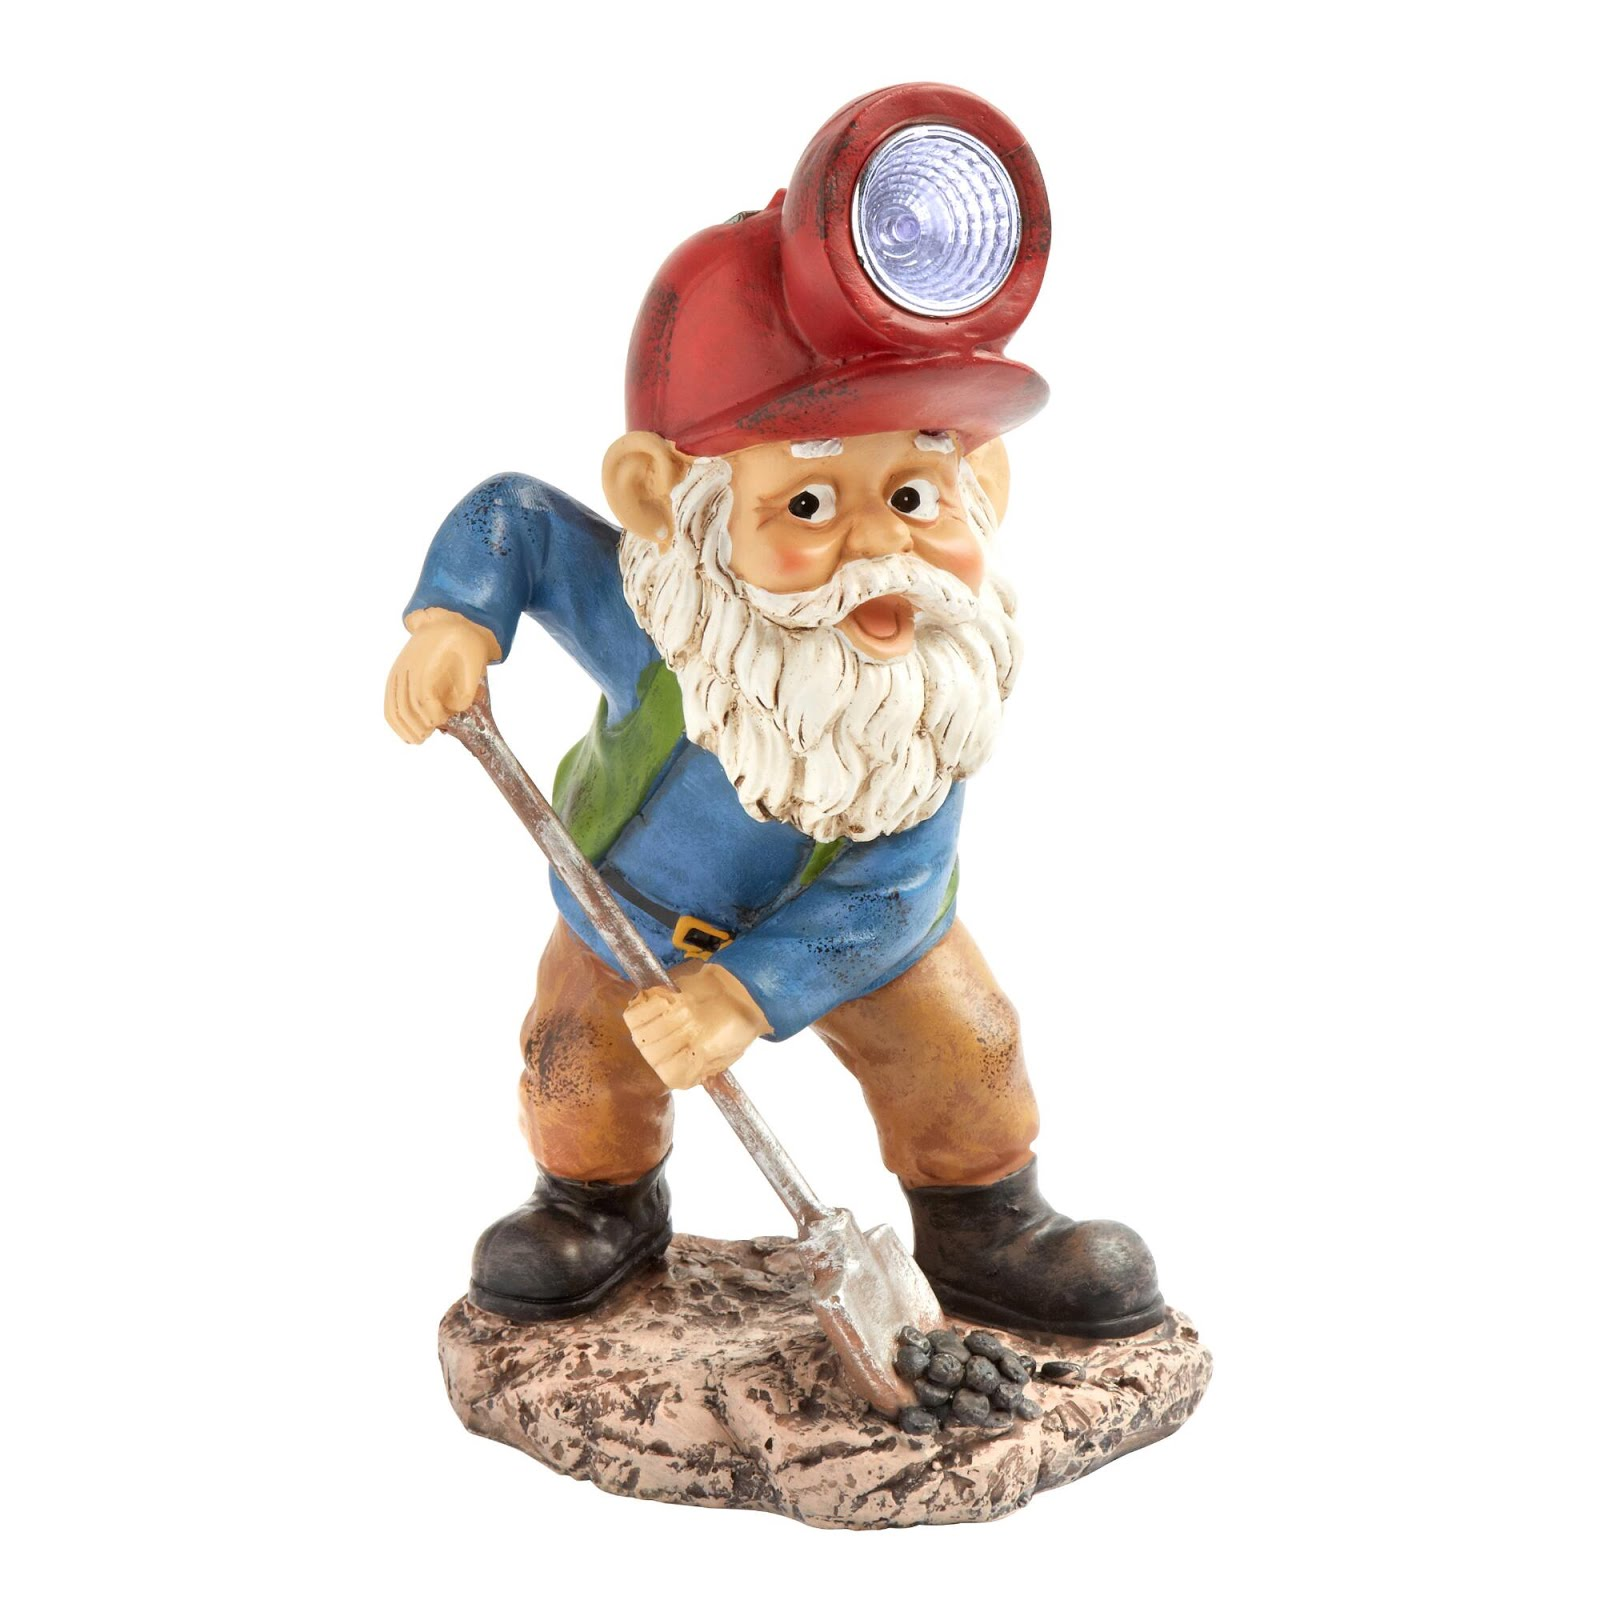 Echoes From The Geekcave: RMA: Gnomes